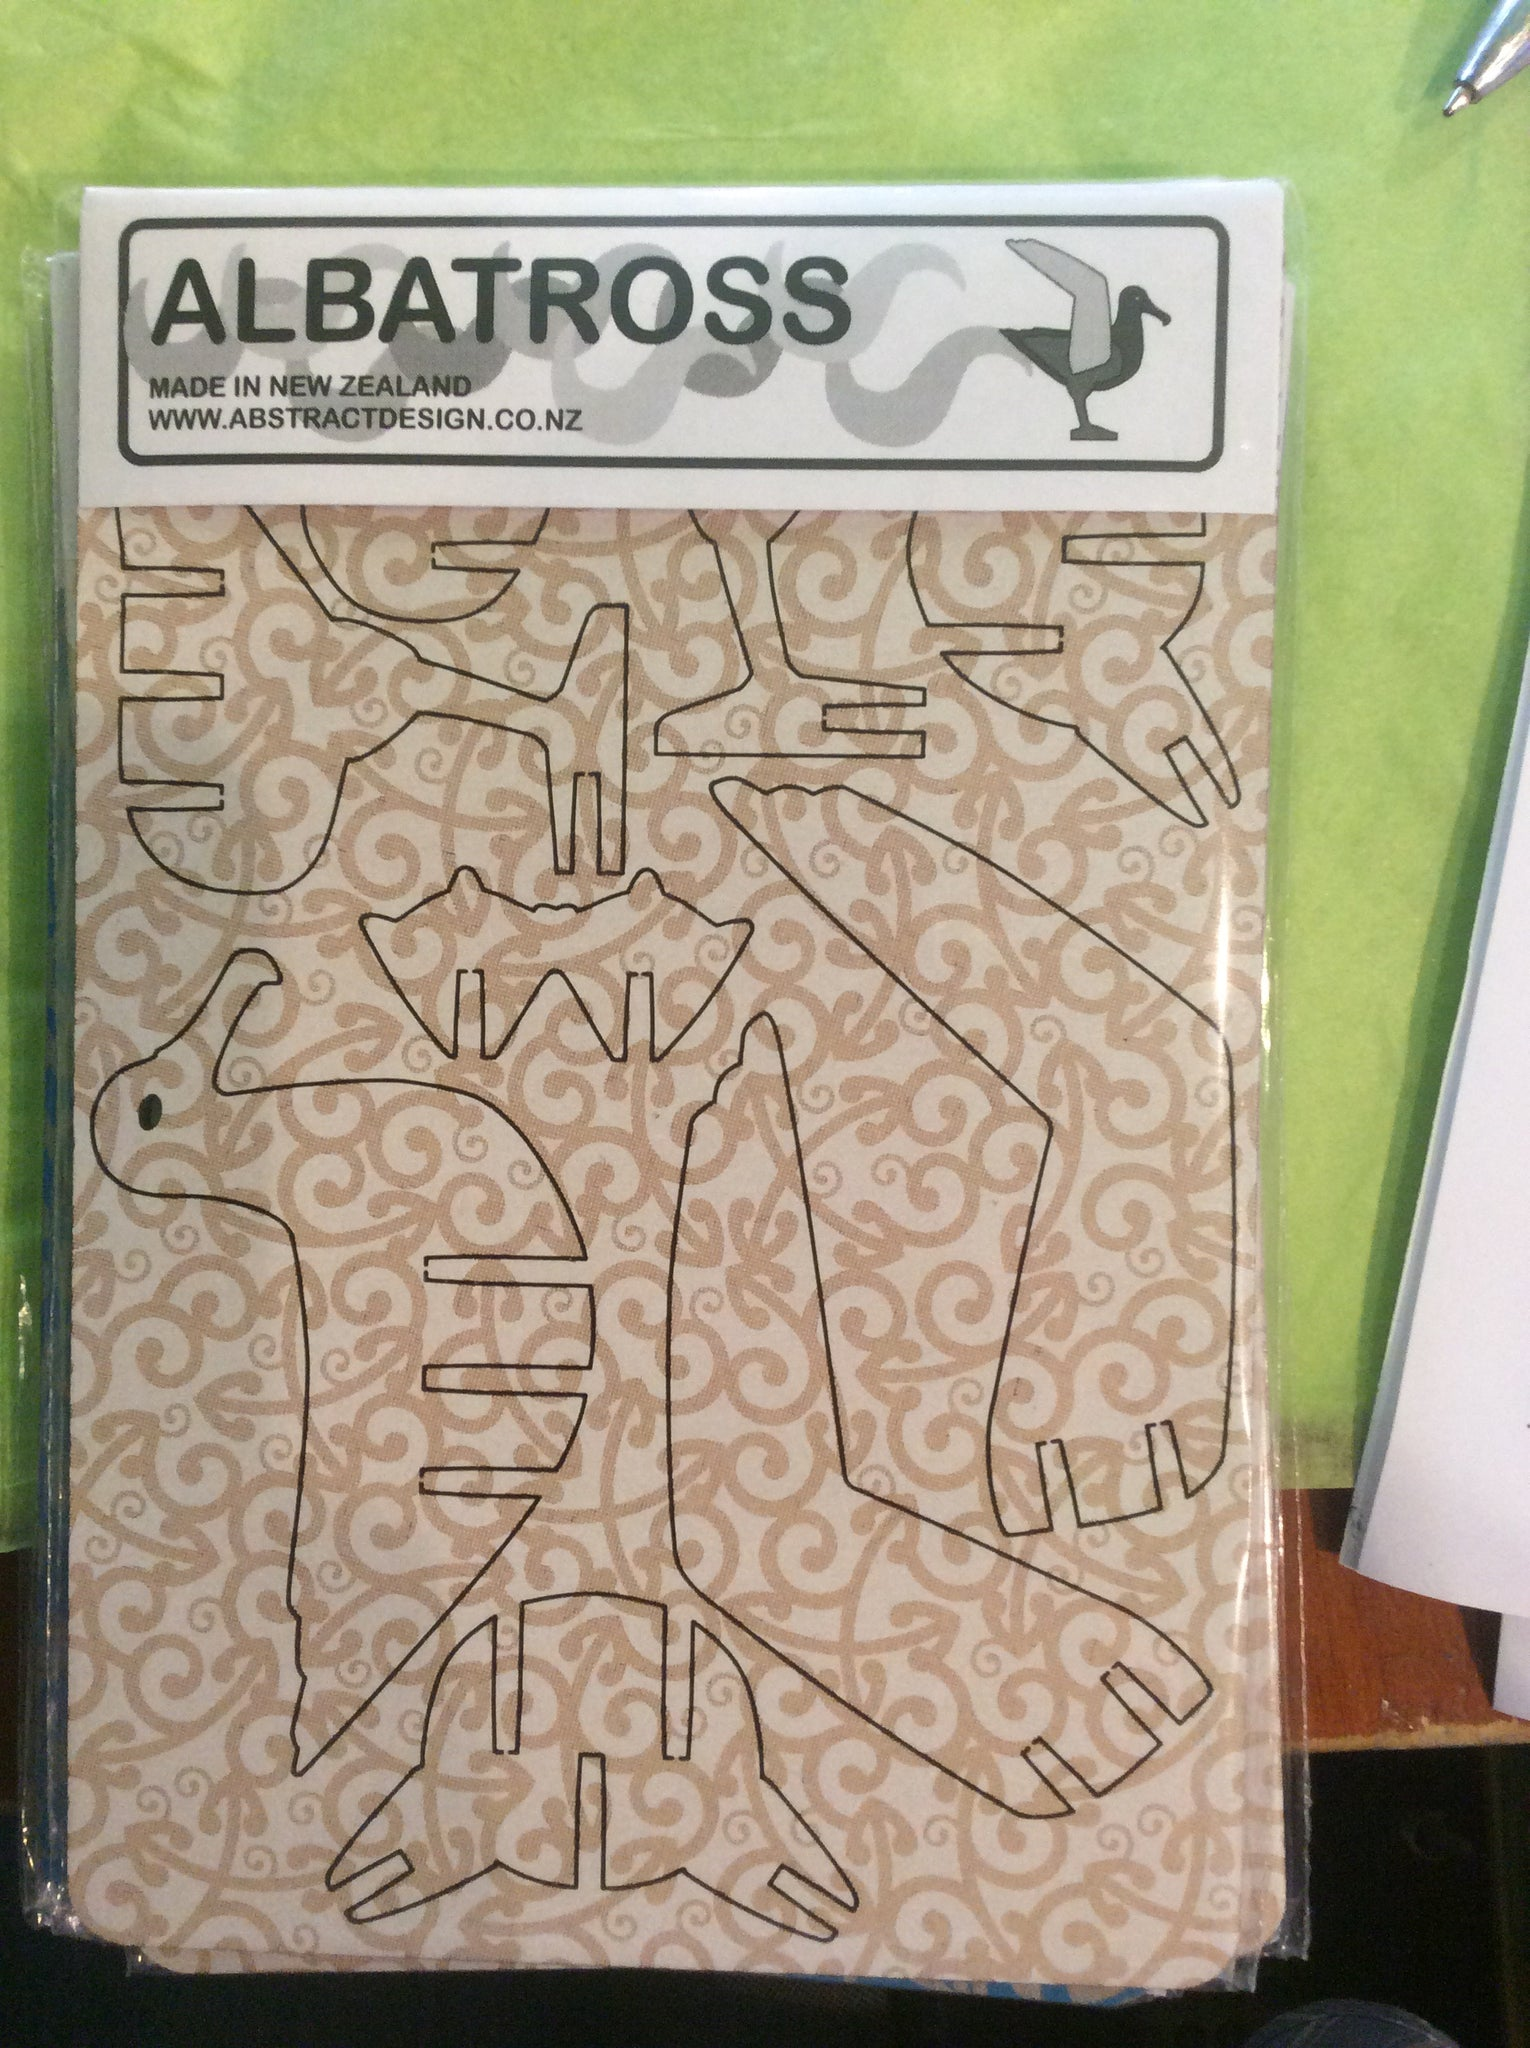 Albatross Flat Pack